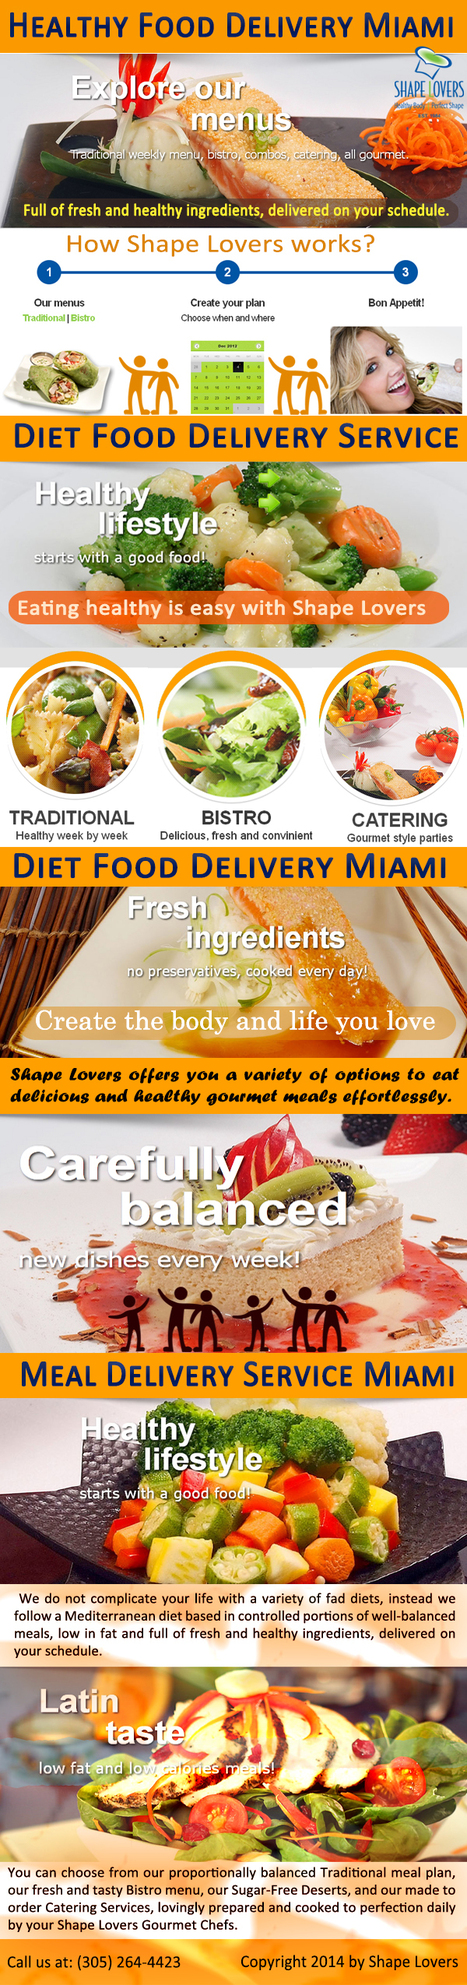 Healthy Meal Delivery Miami   Diet Food Delivery Service   Scoop.it